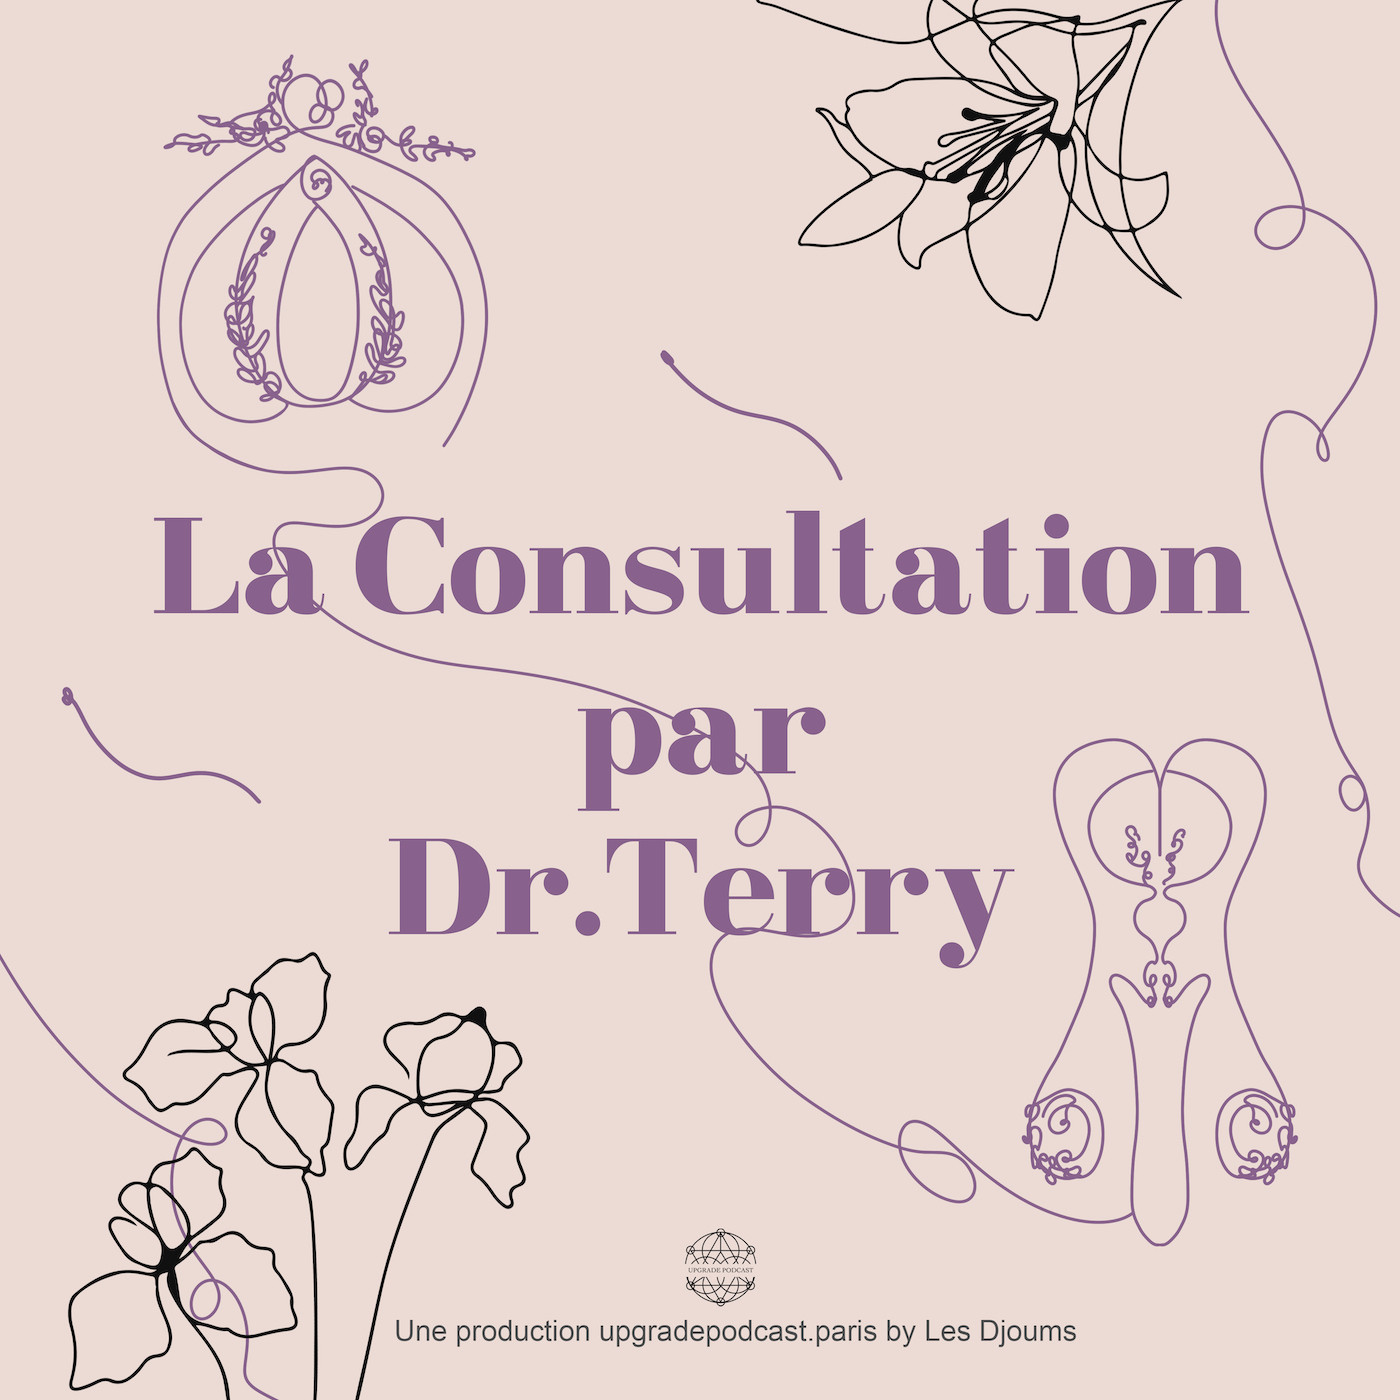 LA CONSULTATION PAR DR. TERRY